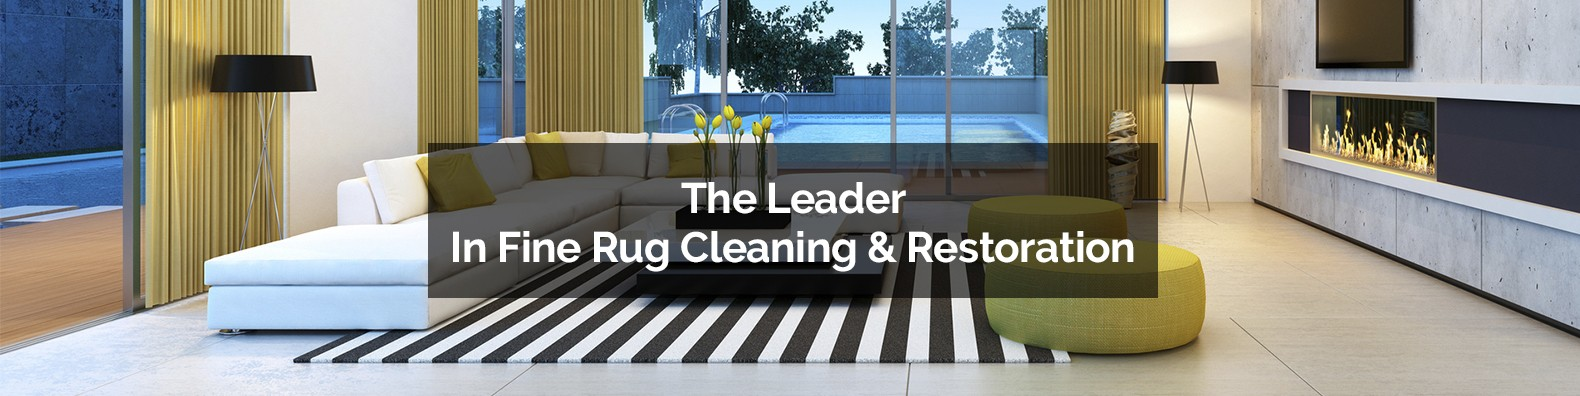 Costikyan Carpet Cleaning (NYC)   LinkedIn